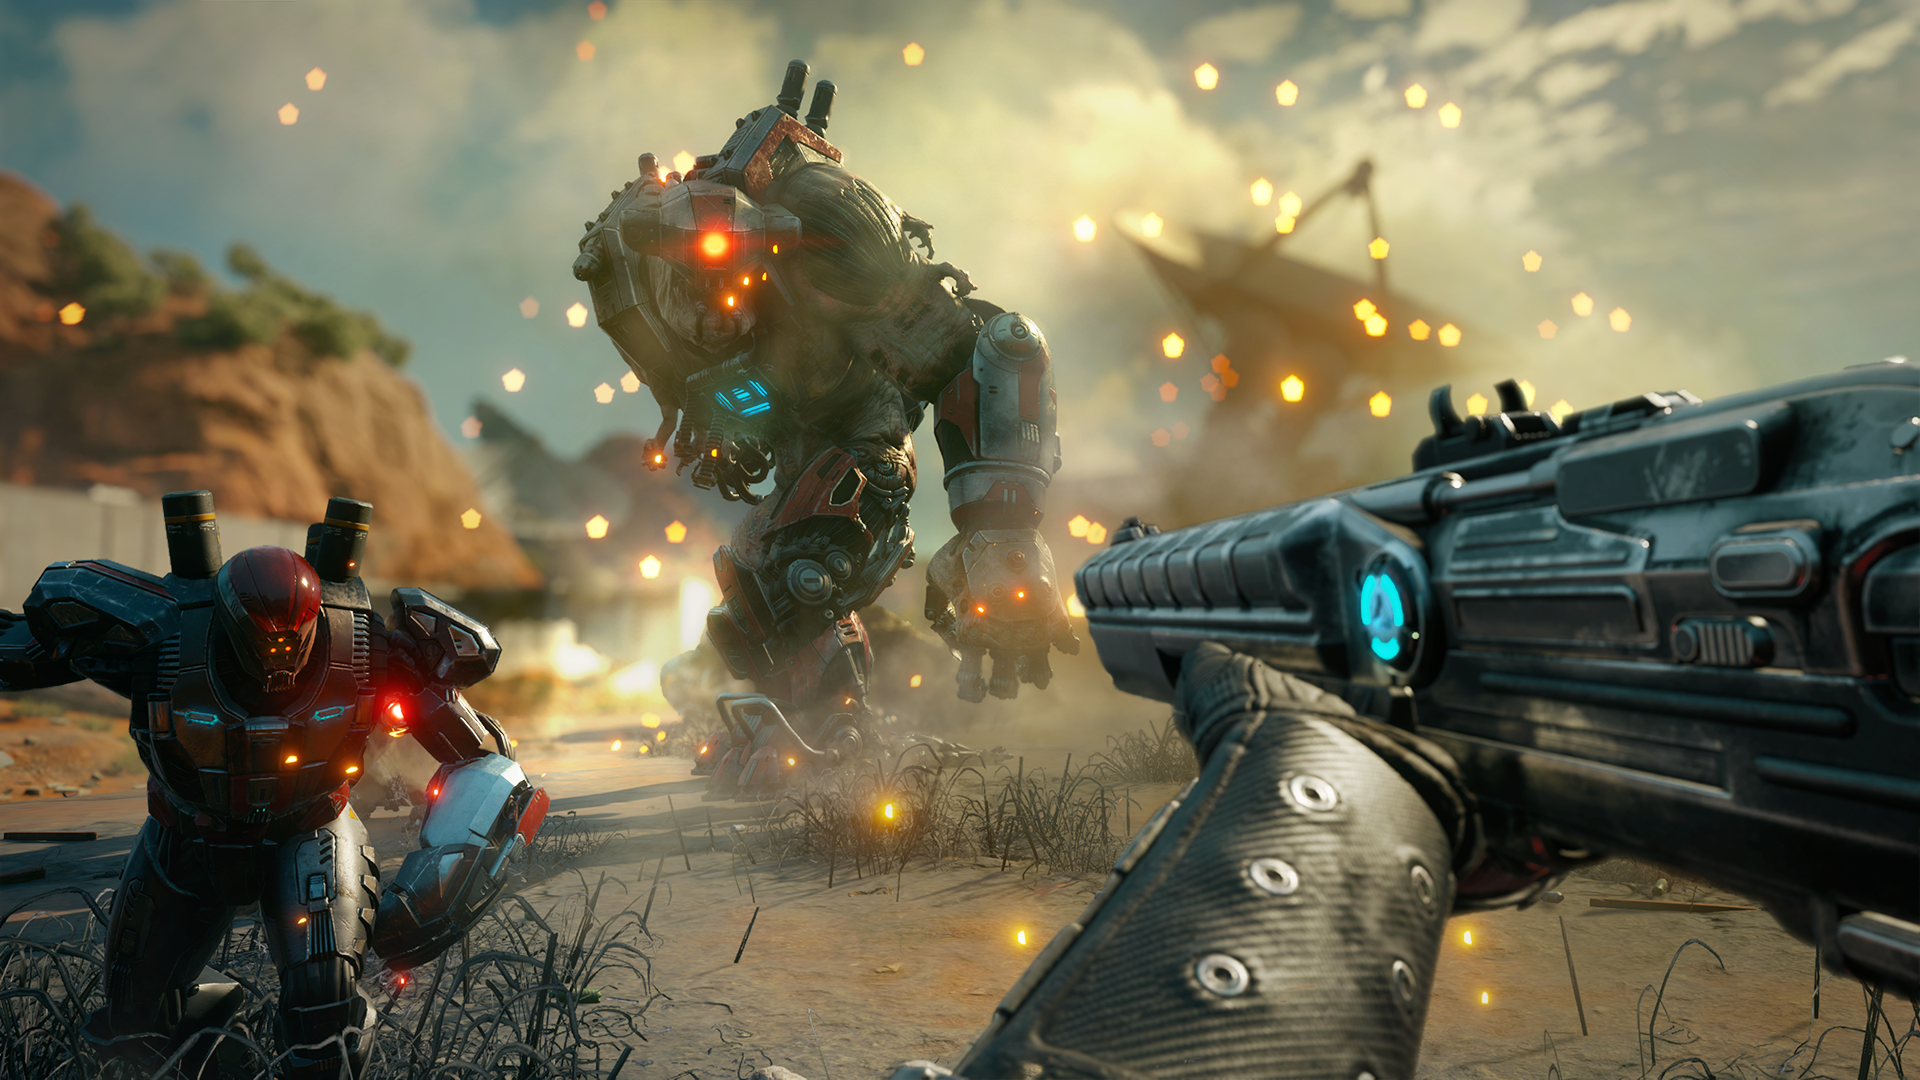 Rage 2' Release Date, Gameplay, Trailer, Plot, Multiplayer, DLC, and